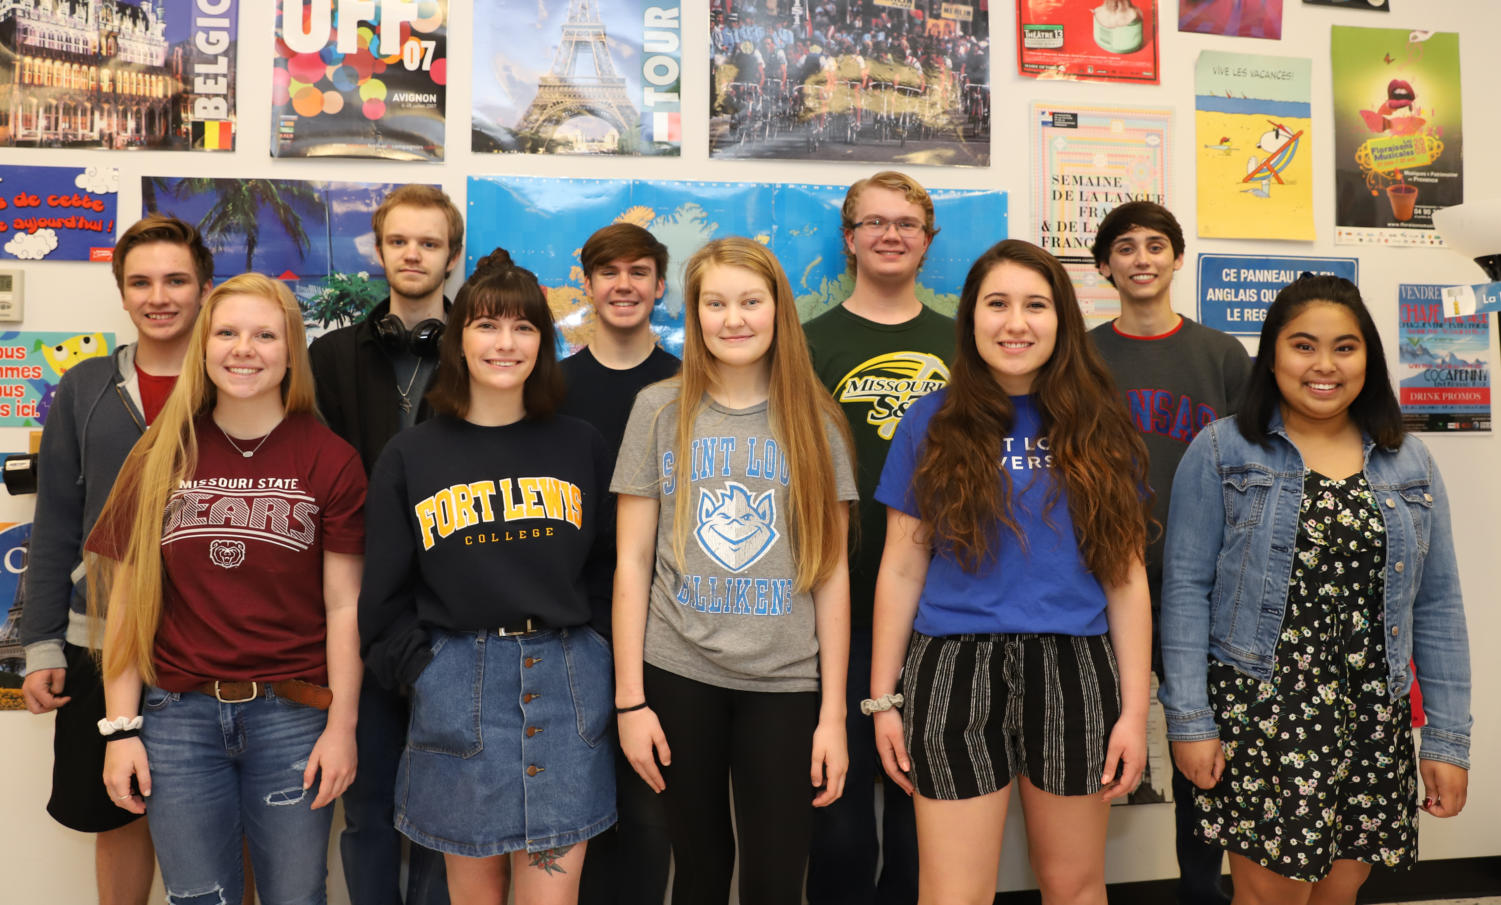 Liberty celebrates (back row left to right) Devin Eckardt, Ian Beardslee, Luke Carter, Mitchell Sanderson, Ryley Pickering (front row left to right) Jenna Woodside, Paityn Schlosser, Sylvia Young, Greta Rompel and Chasteanne Salvosa for earning Seals in Biliteracy.